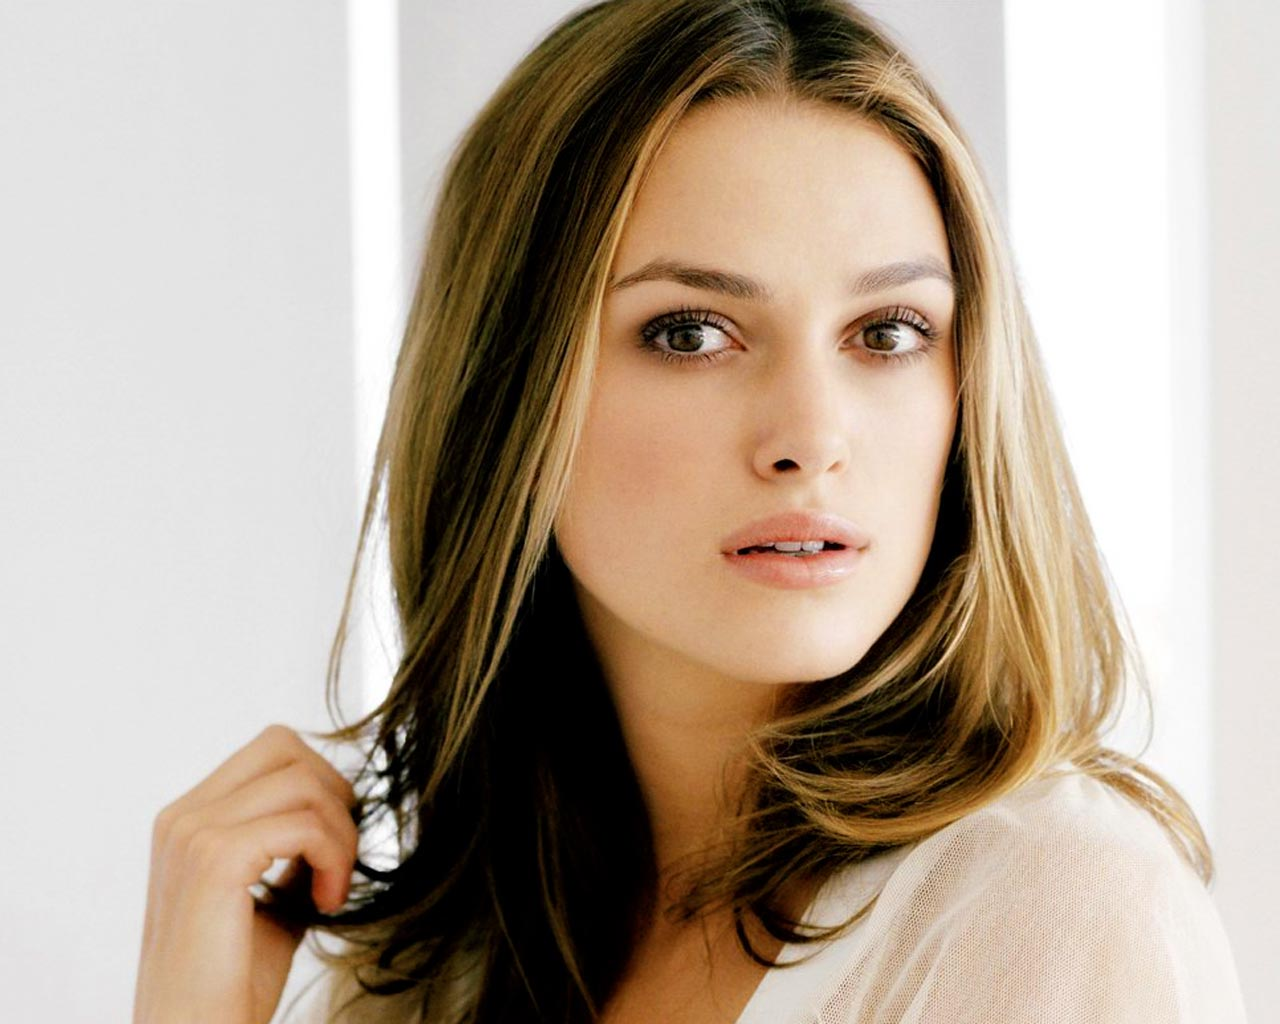 Hollywood Actress Keira Knightley nice wallpapers